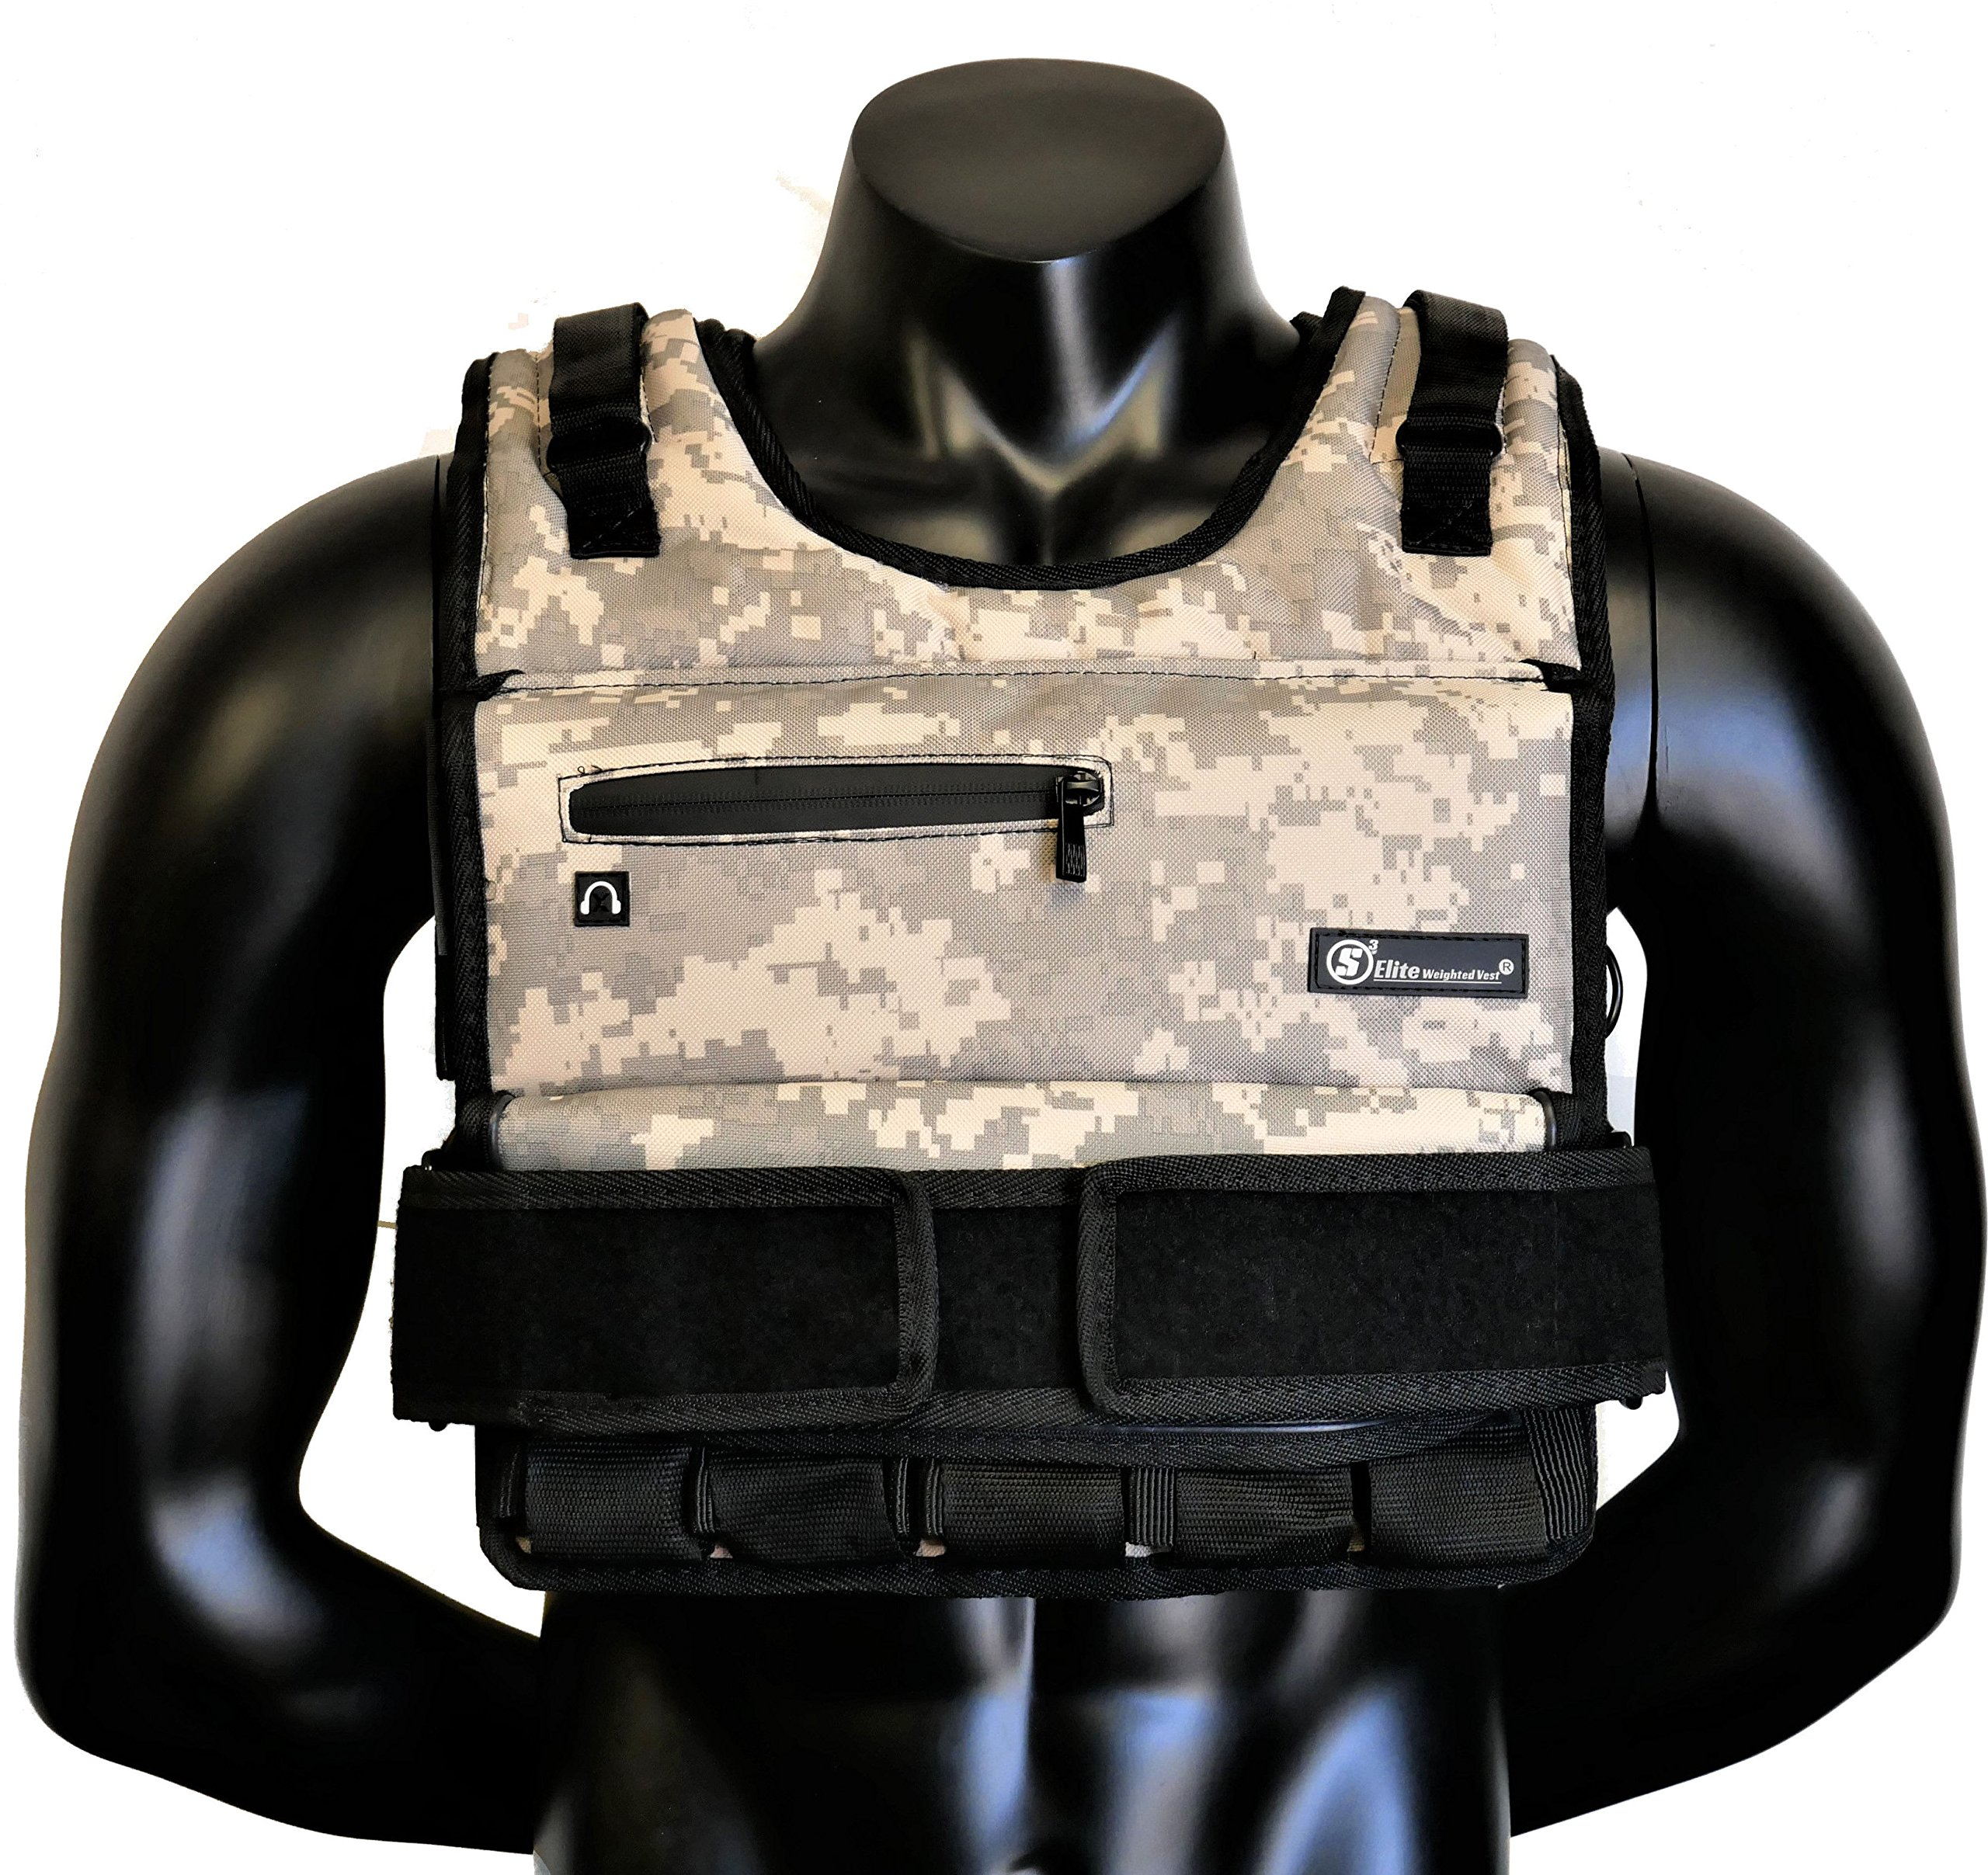 Strength sport systems Weight Vest (Short) - Premium Quality - Best for Cross fit Training - Running - Jogging - Fully Adjustable (S pro Weight Vest) (Elite II - Camouflage, 70lbs(Iron bar Set)) by Strength sport systems